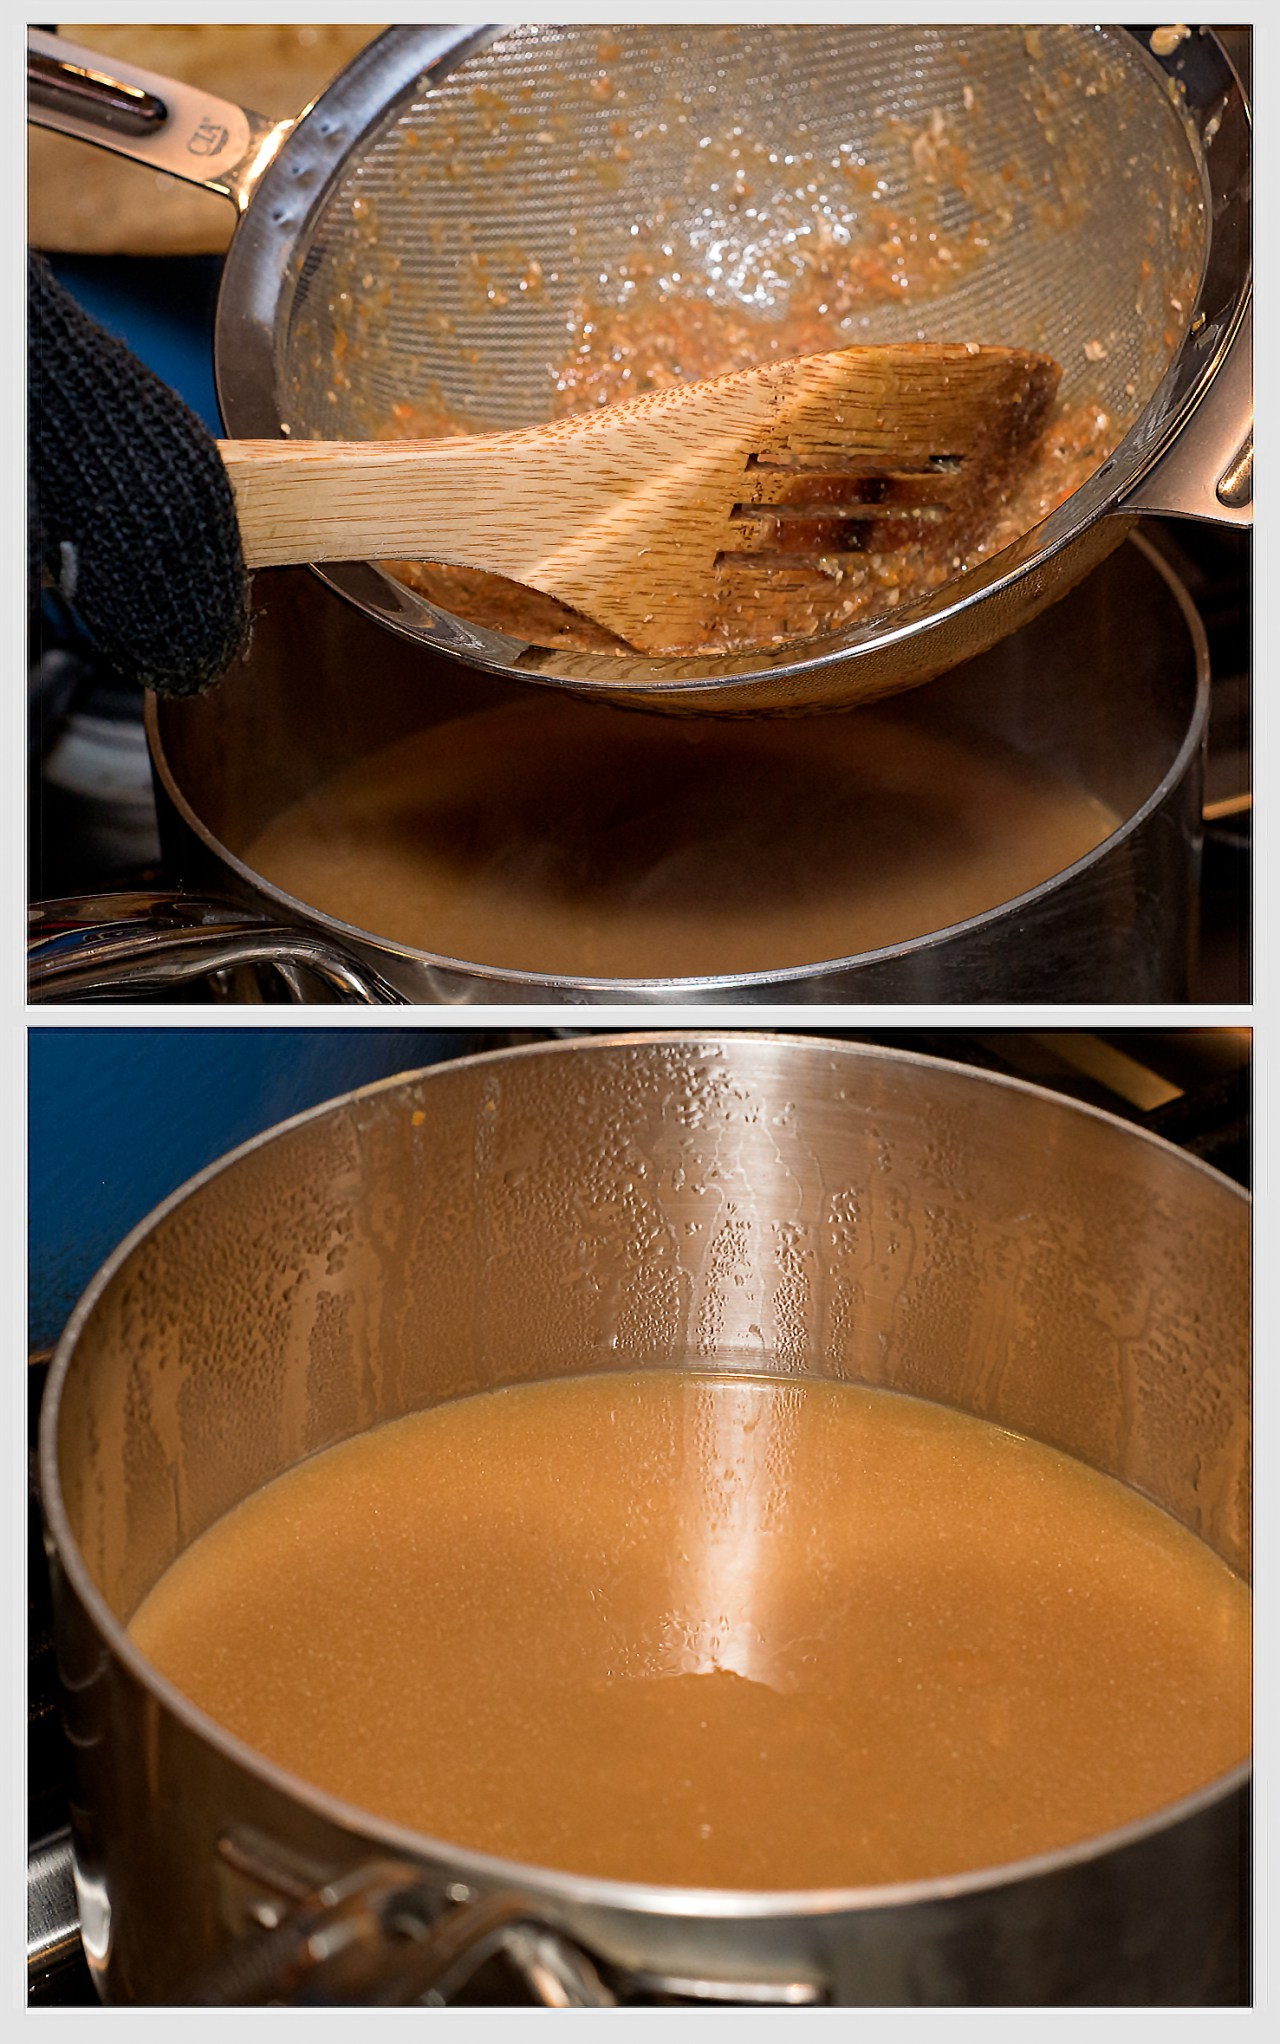 Straining the solids from the final gravy